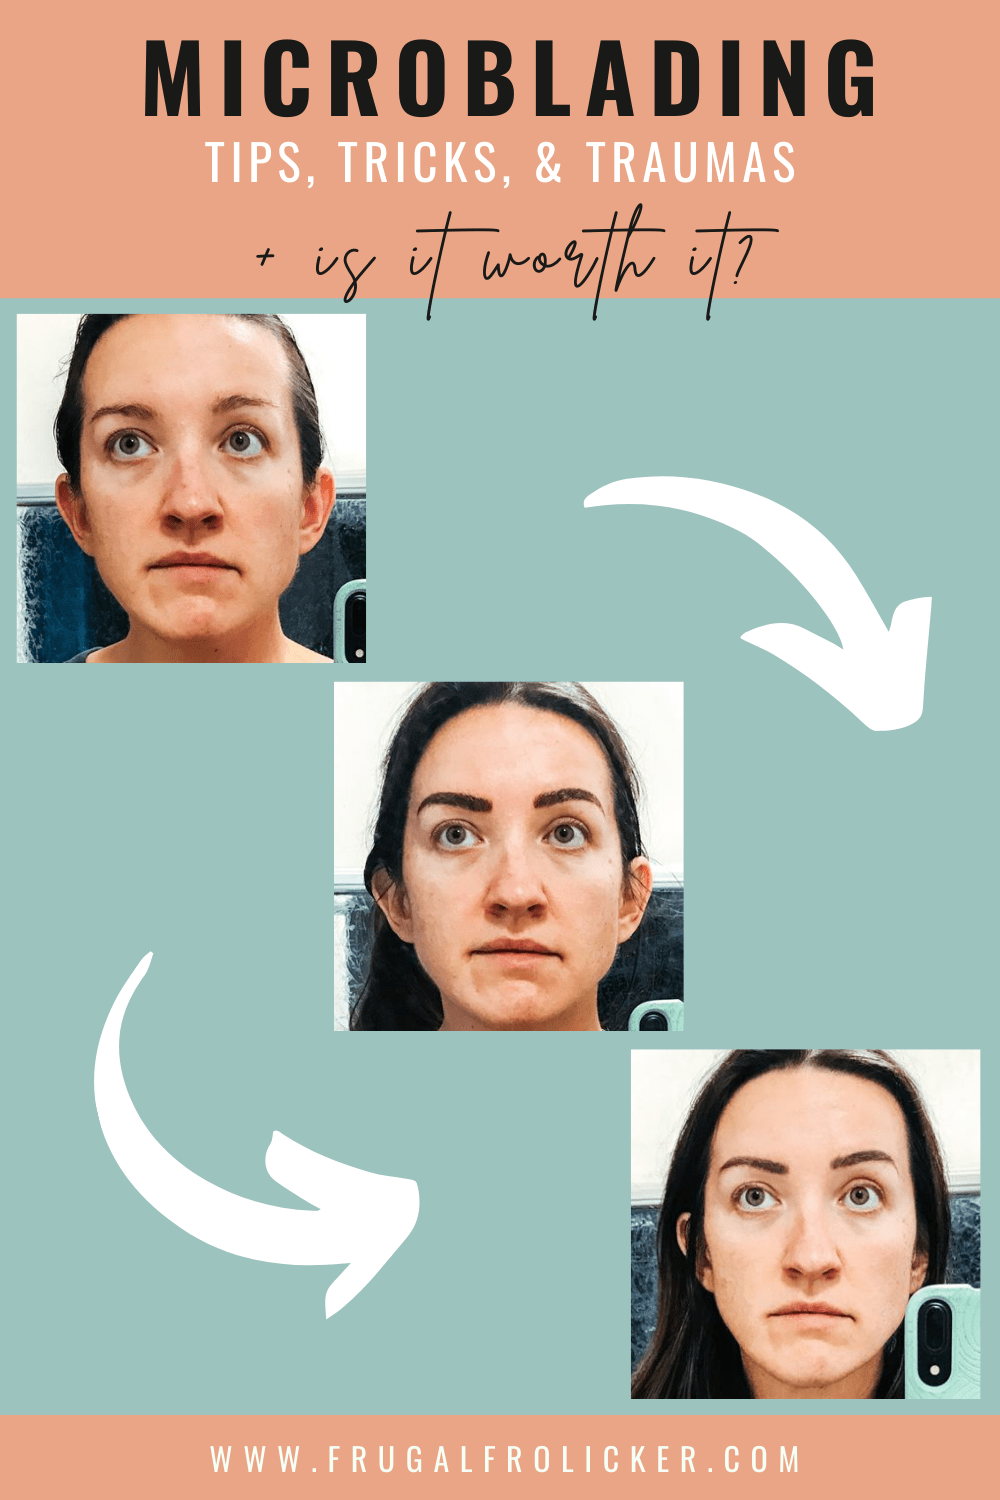 Is microblading worth it? | Microblading tips, tricks, and traumas